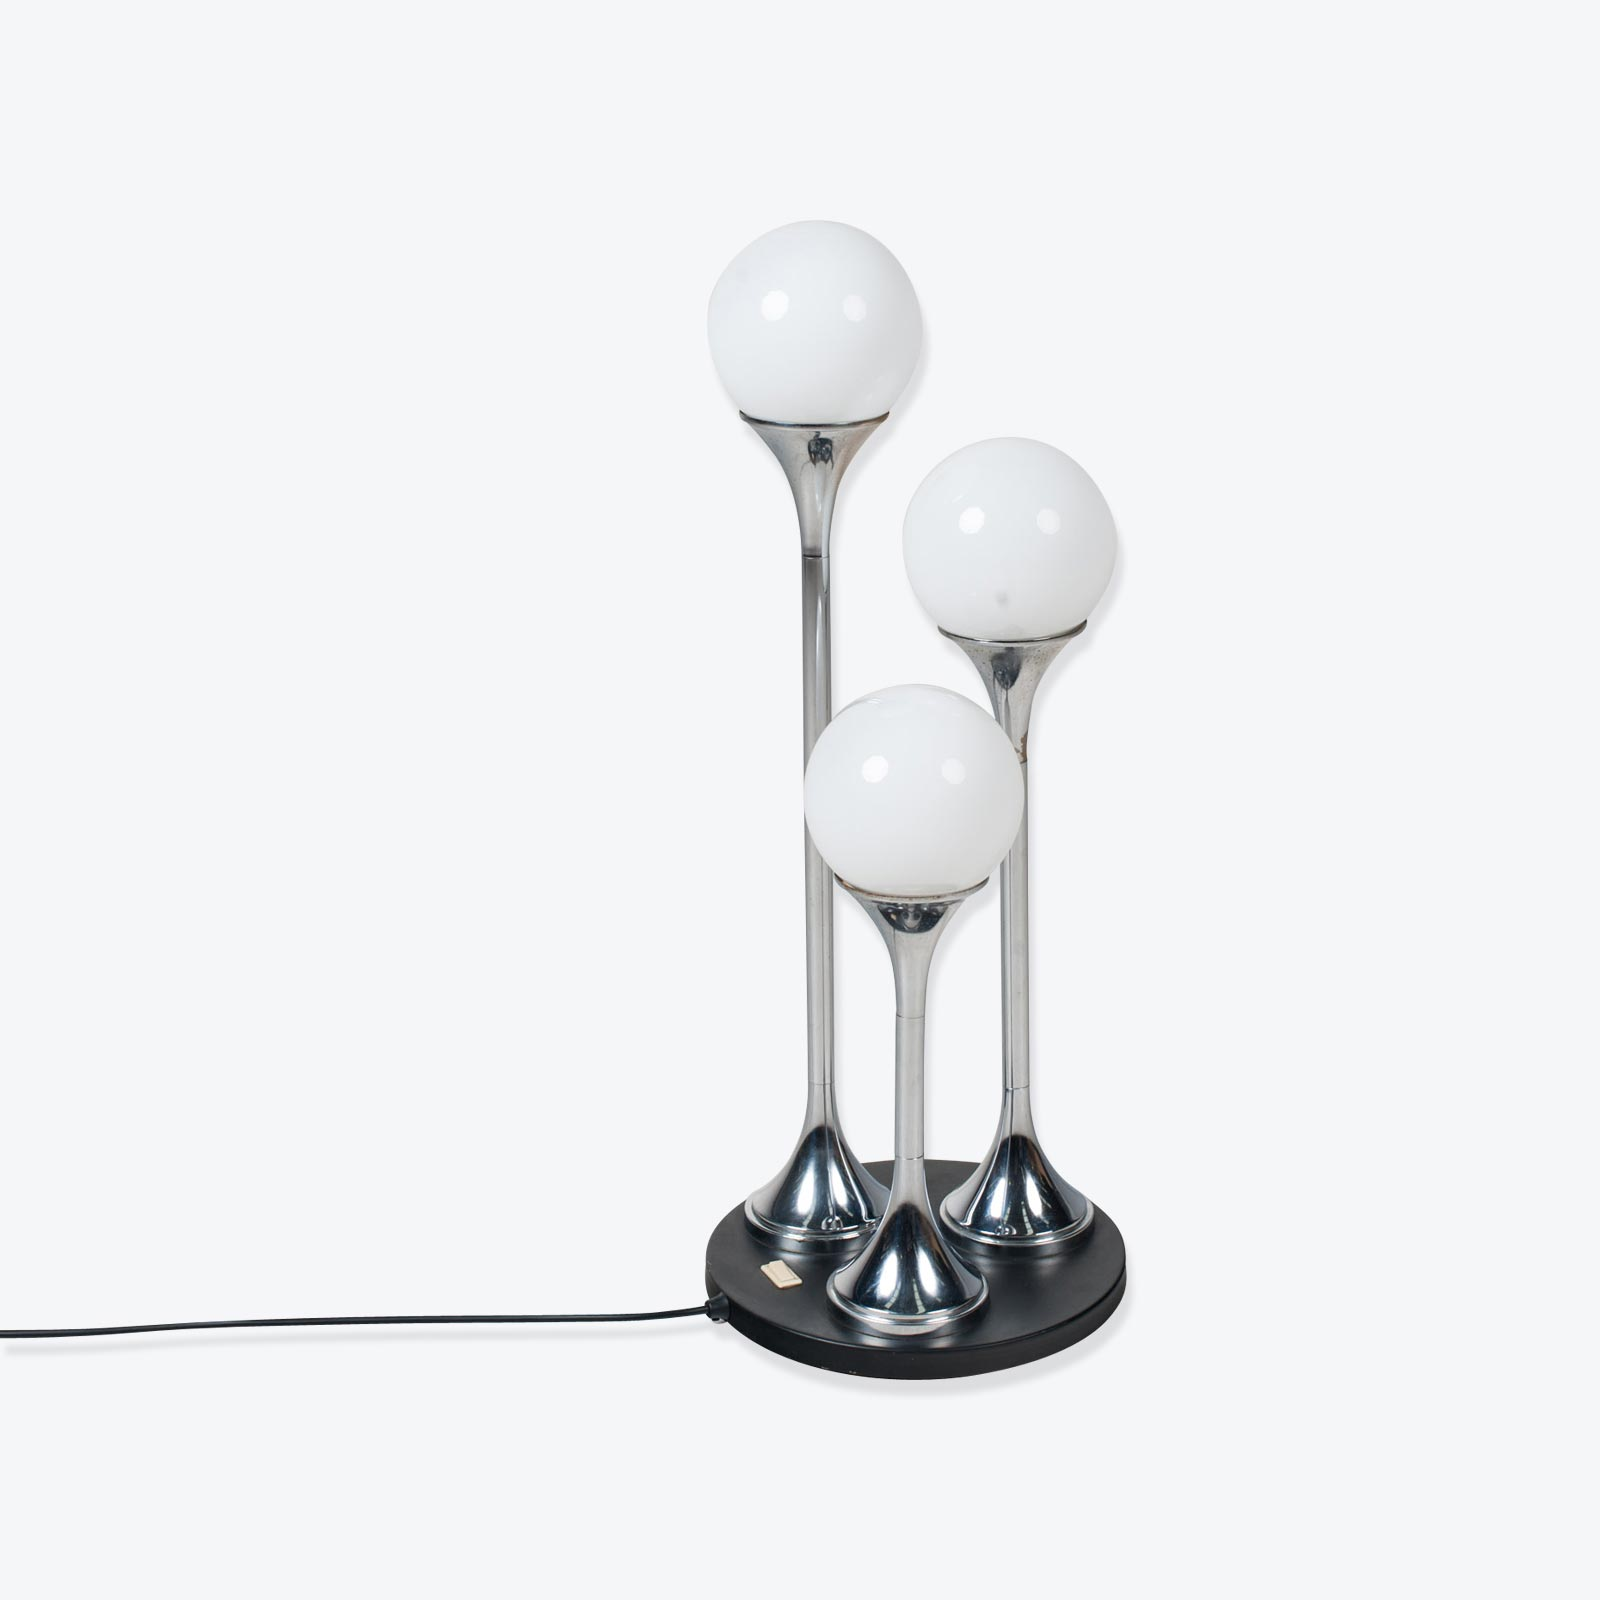 Image of: Chrome Floor Lamp By Targetti Sankey 1960s Italy Modern Times